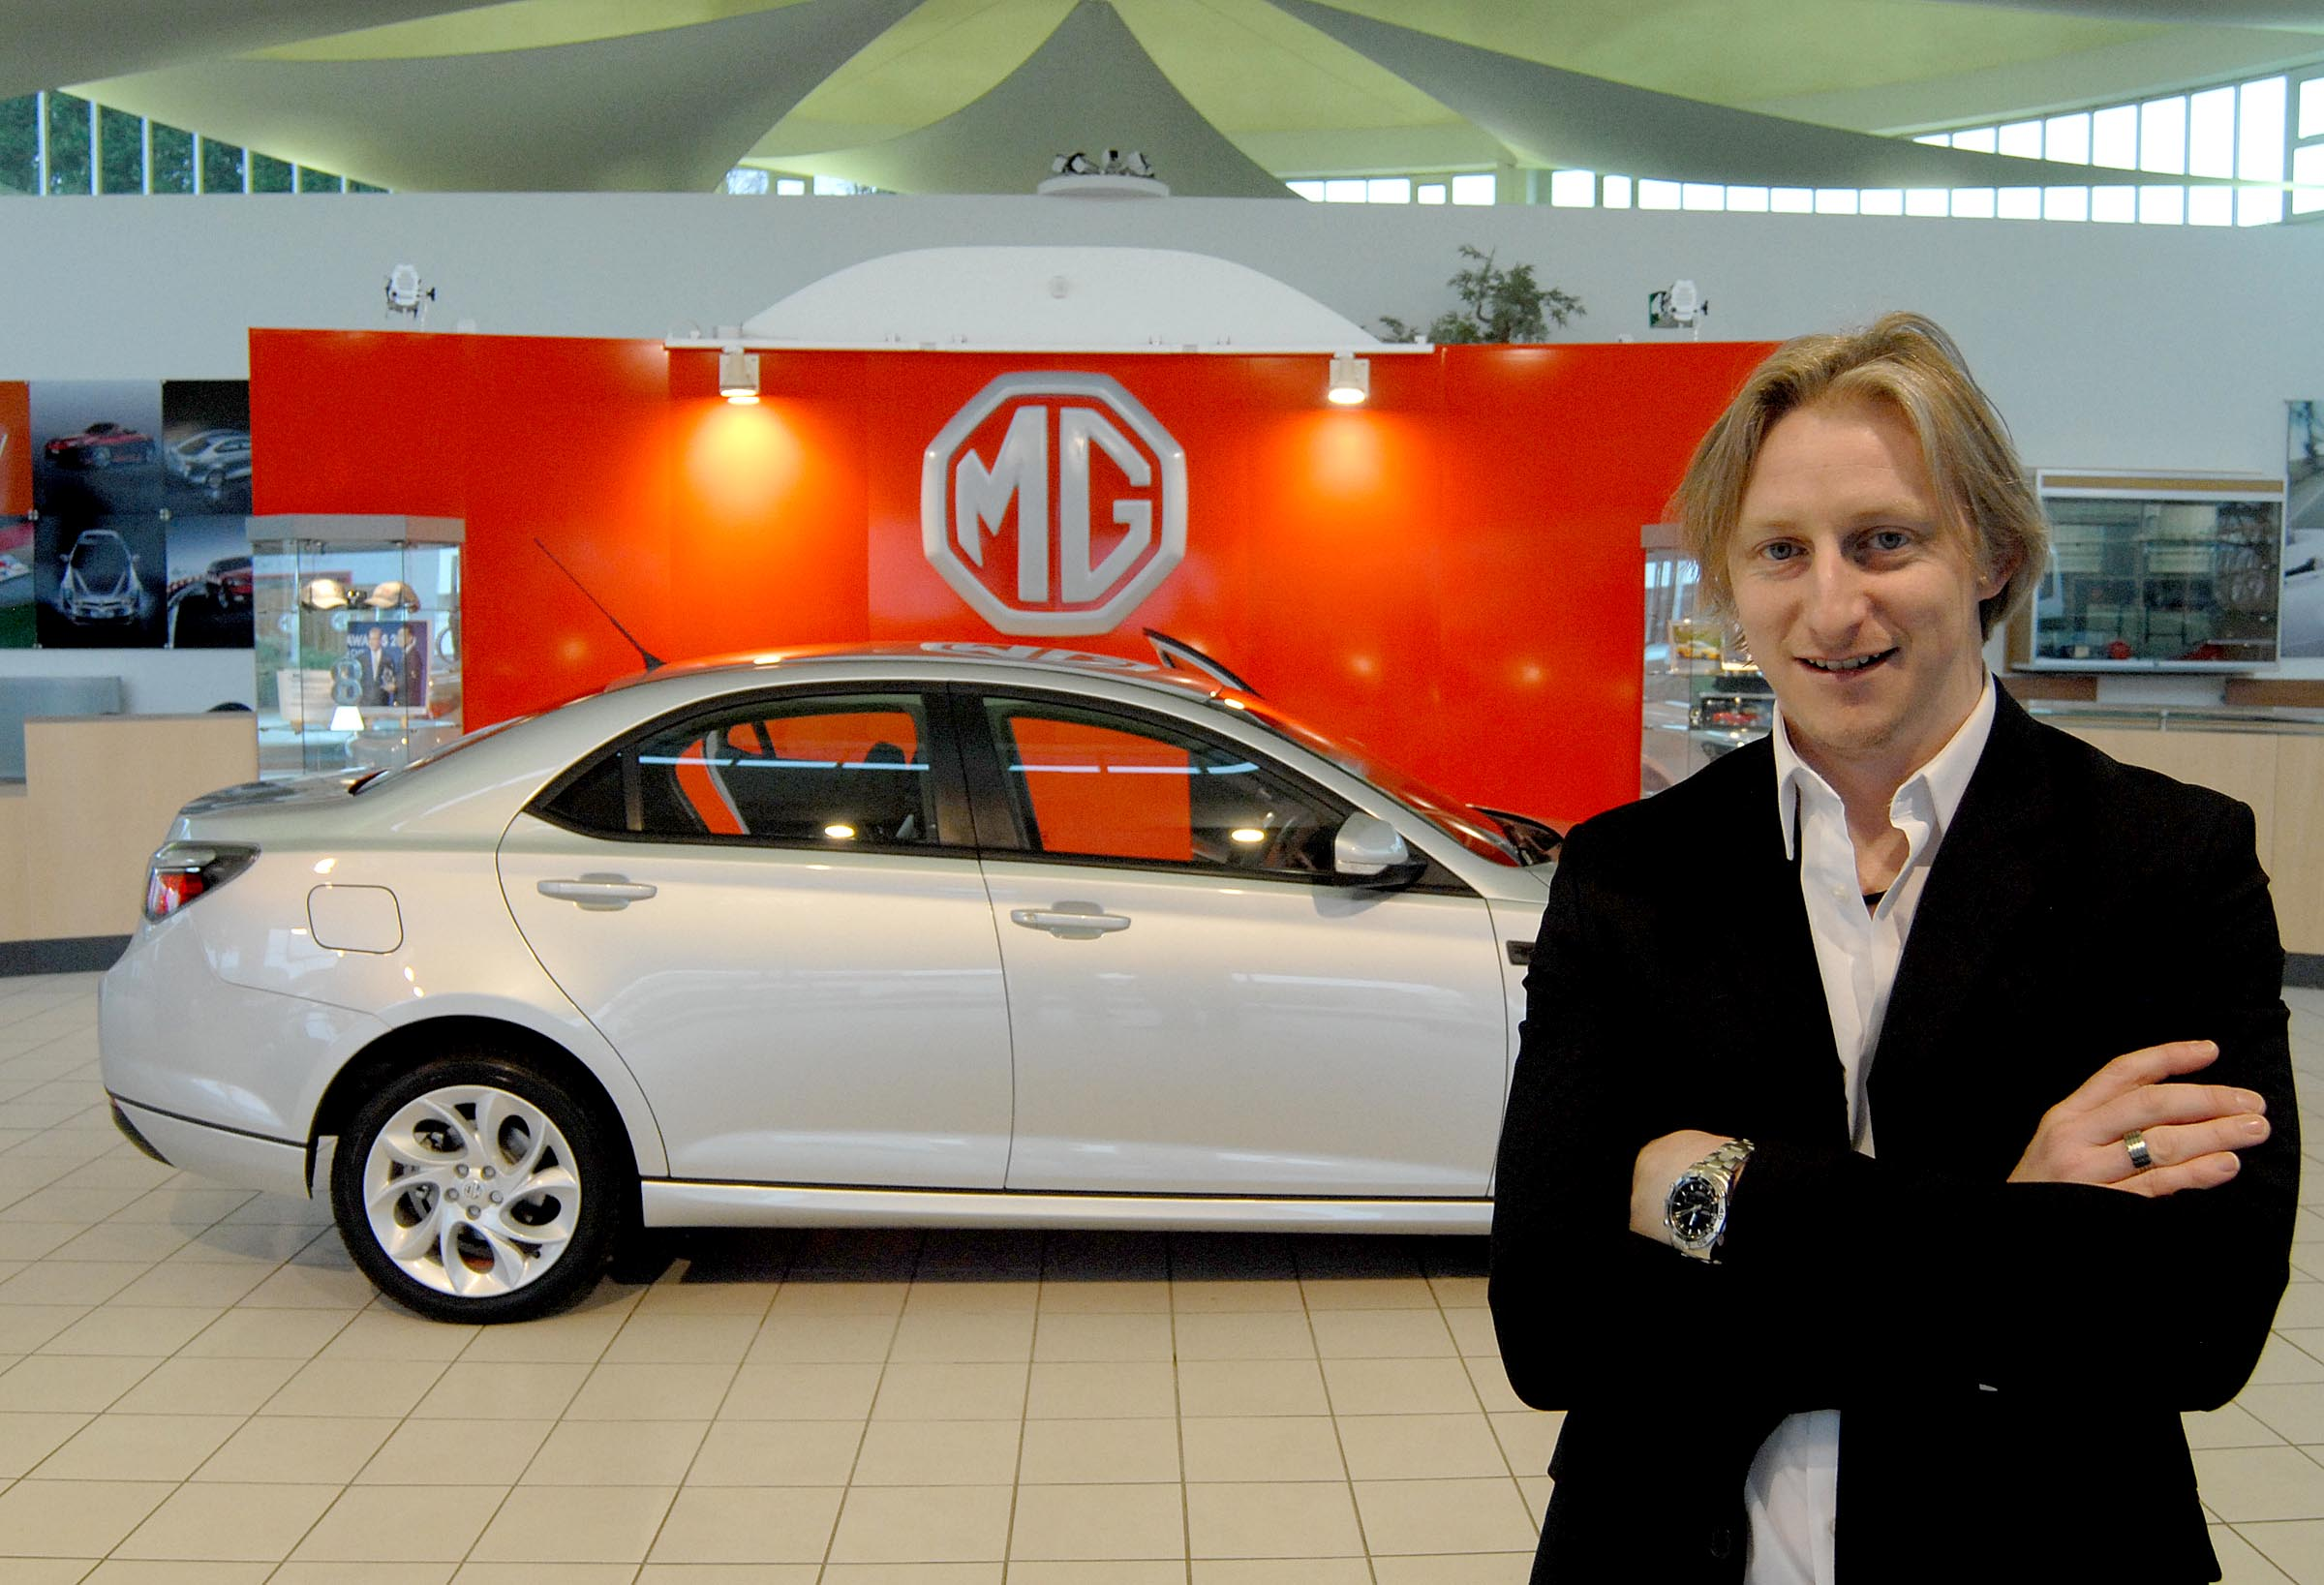 MG6 Magnette saloon with head designer Tony Williams-Kenny